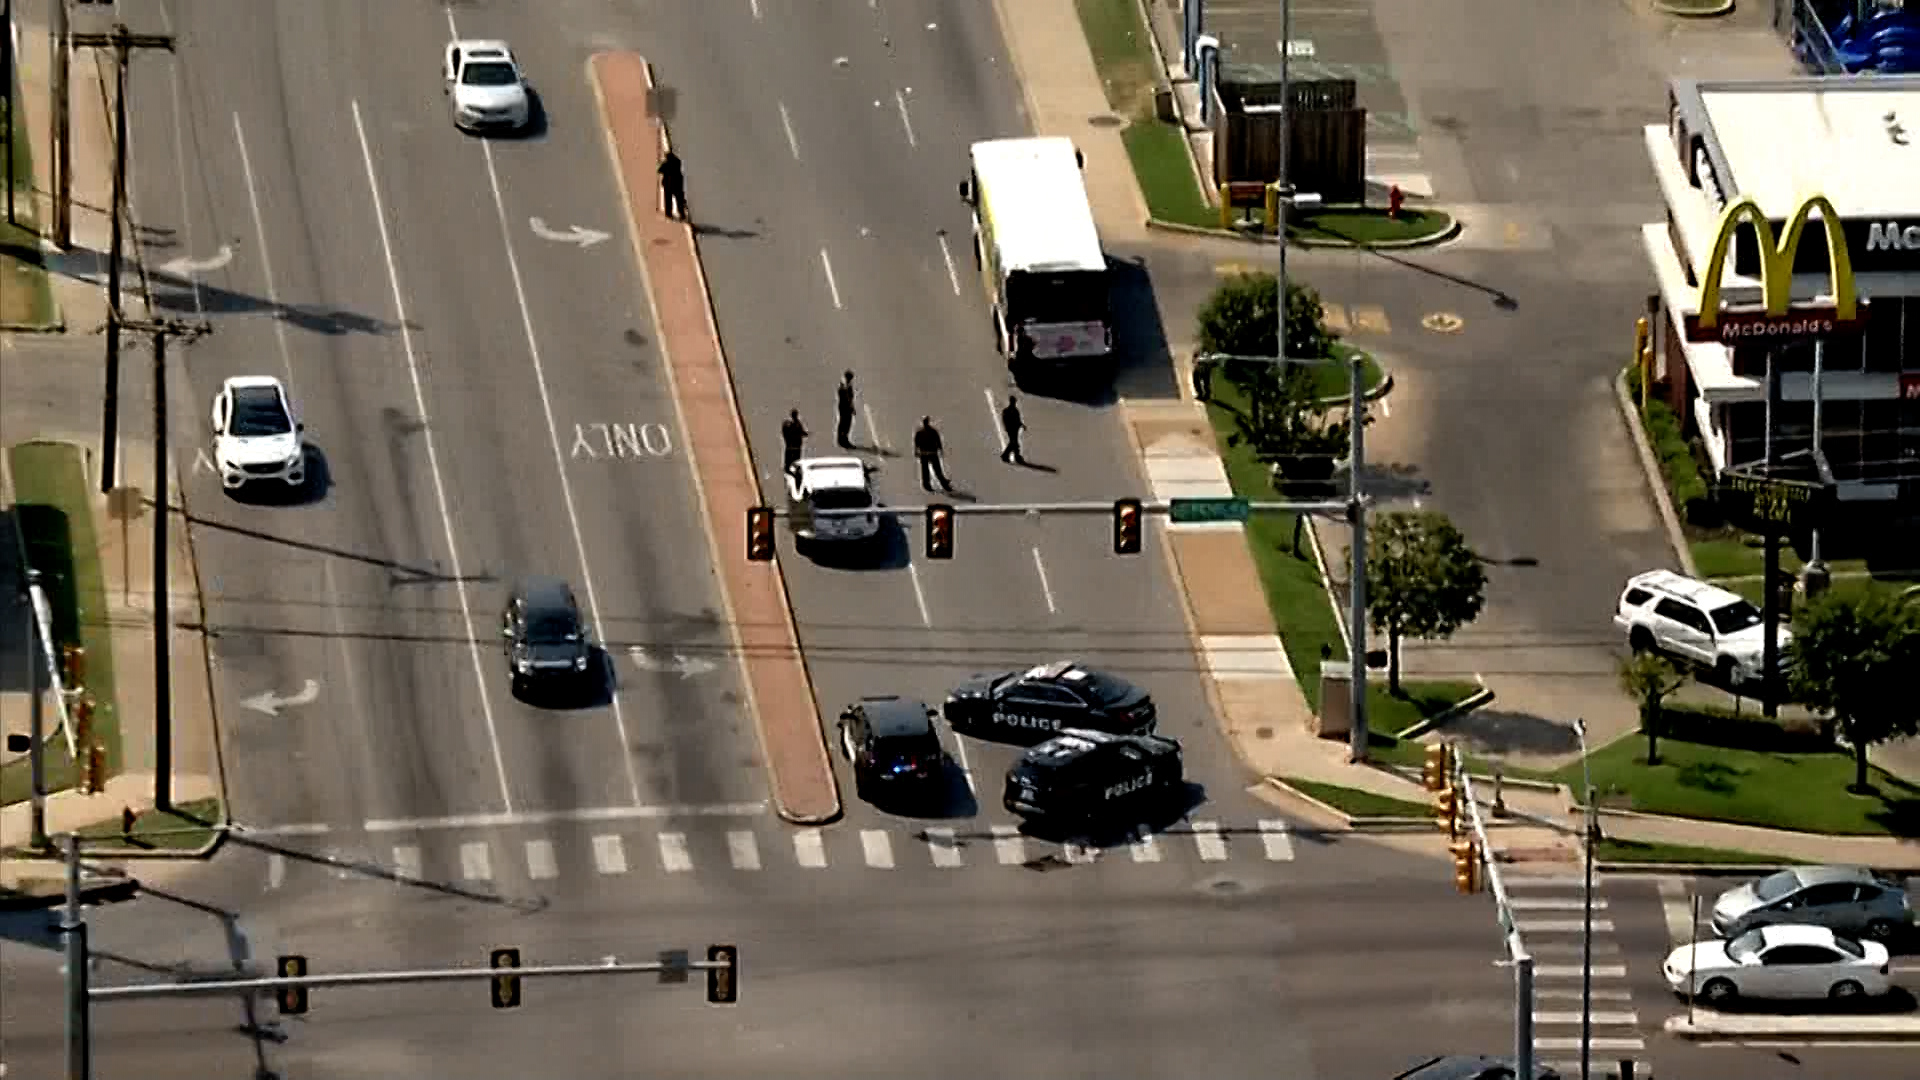 Fatal auto-pedestrian accident at nw 23rd and penn